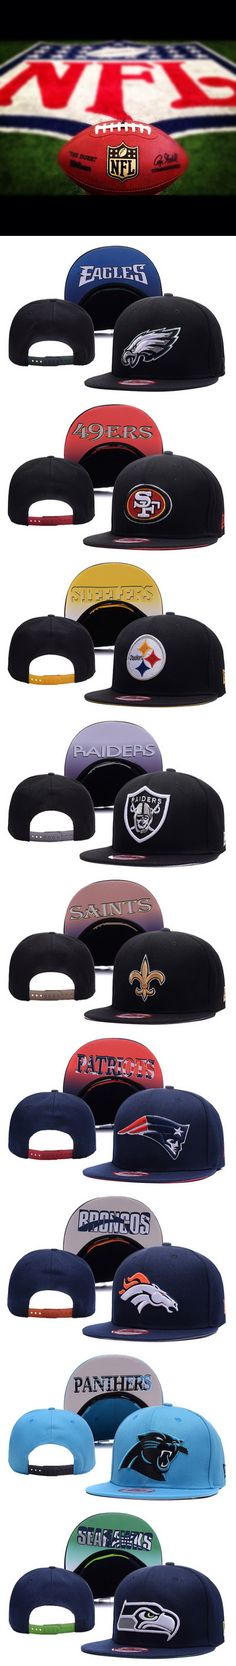 info for da4e2 f1eba Buy Now - What i say is crazy,what i love is NFL ♥♥